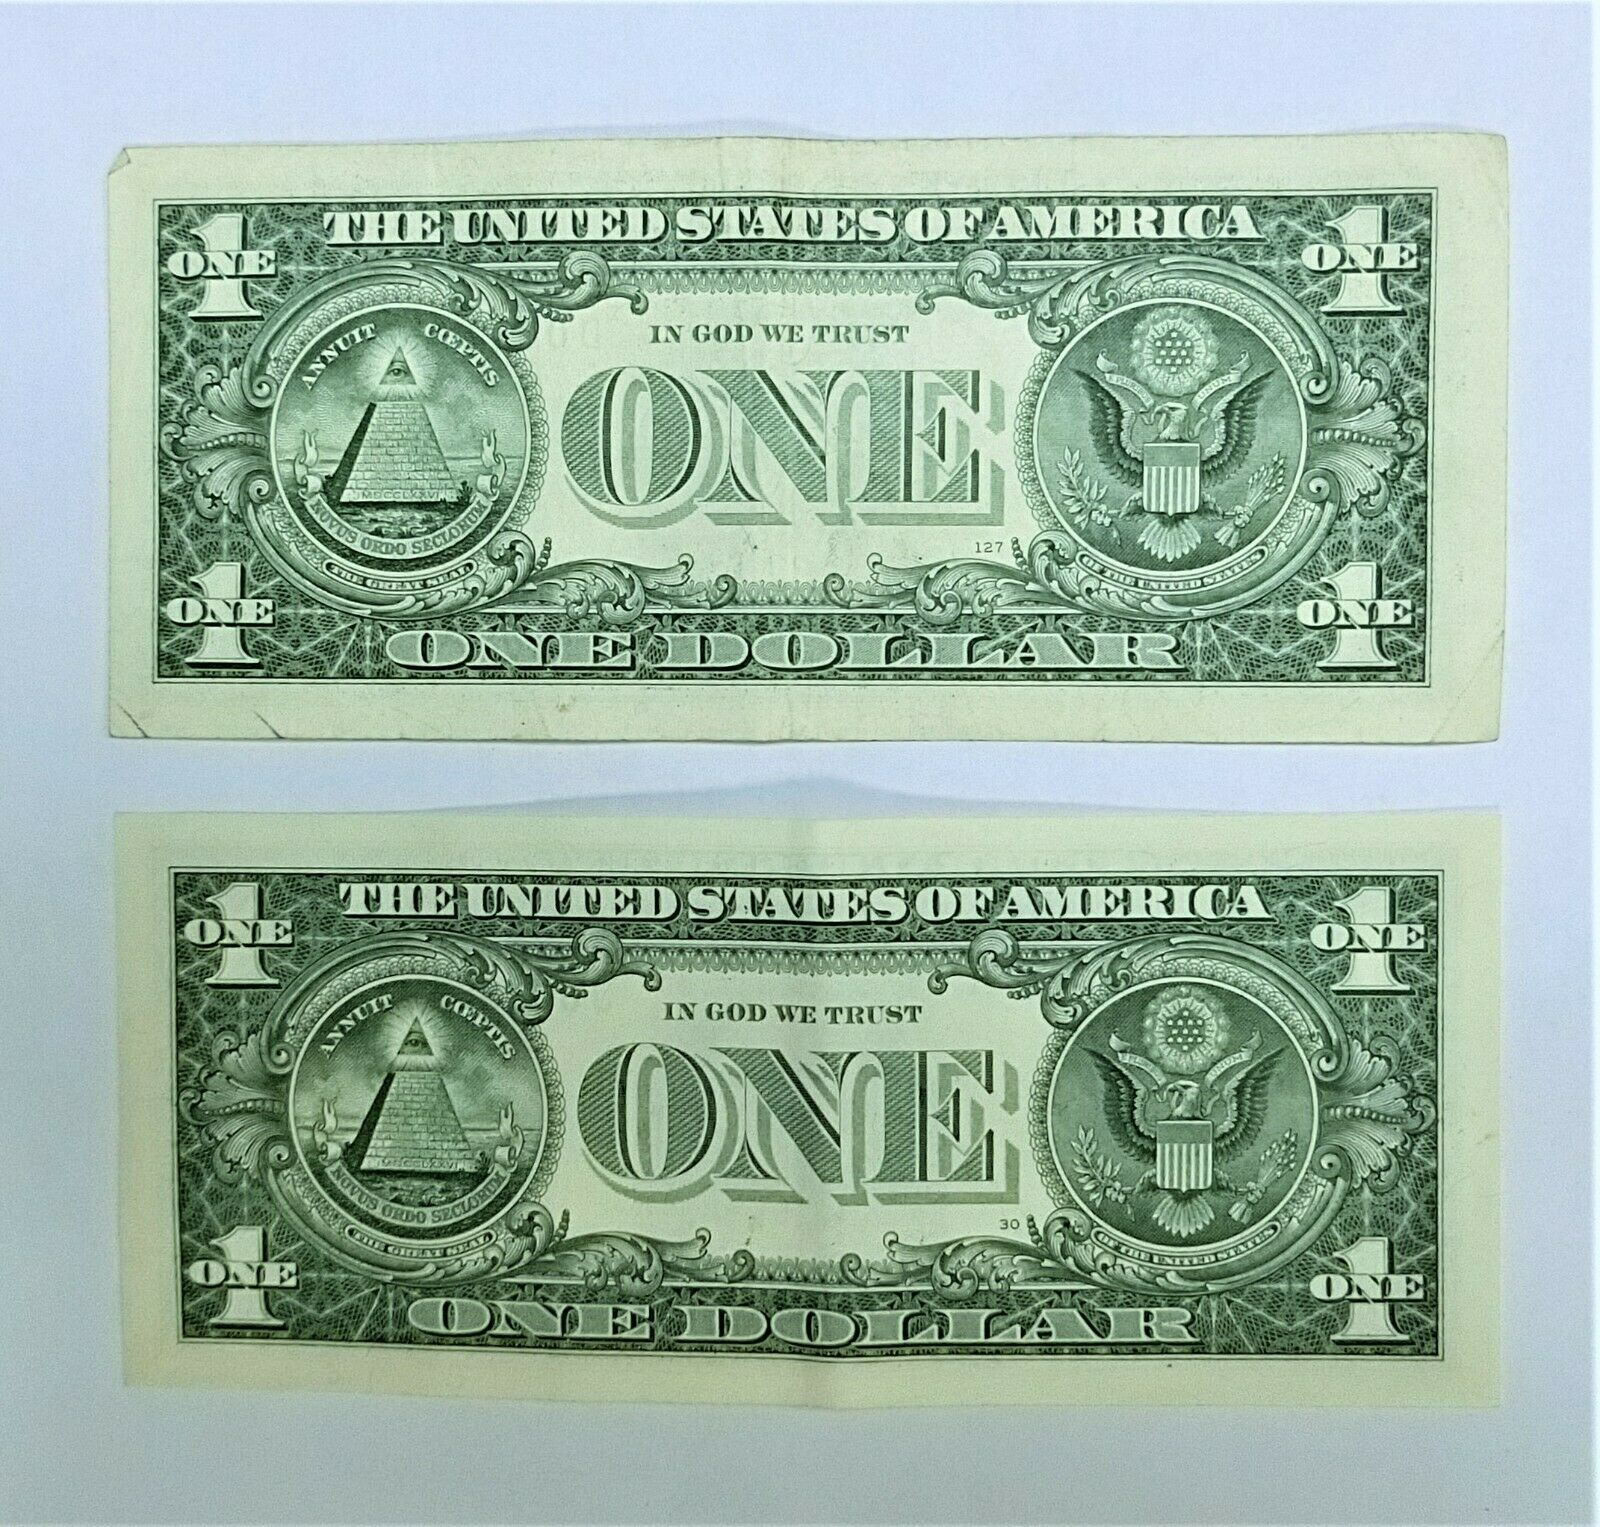 2013 1 2017 1 1 ONE DOLLAR STAR NOTE CURRENCY, BILL 123  - $13.87